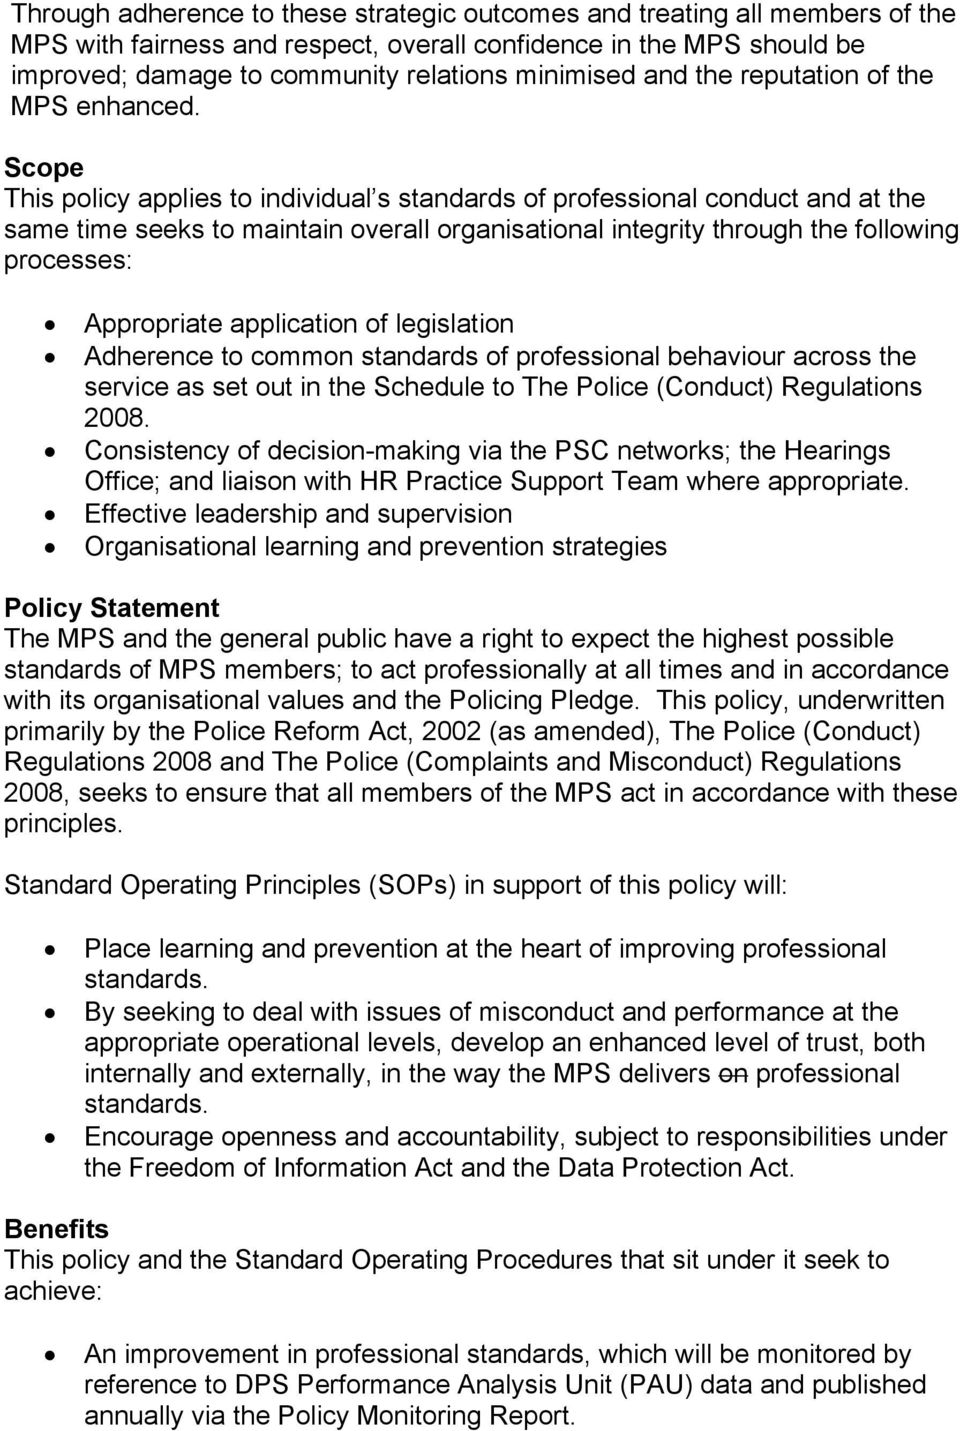 Scope This policy applies to individual s standards of professional conduct and at the same time seeks to maintain overall organisational integrity through the following processes: Appropriate